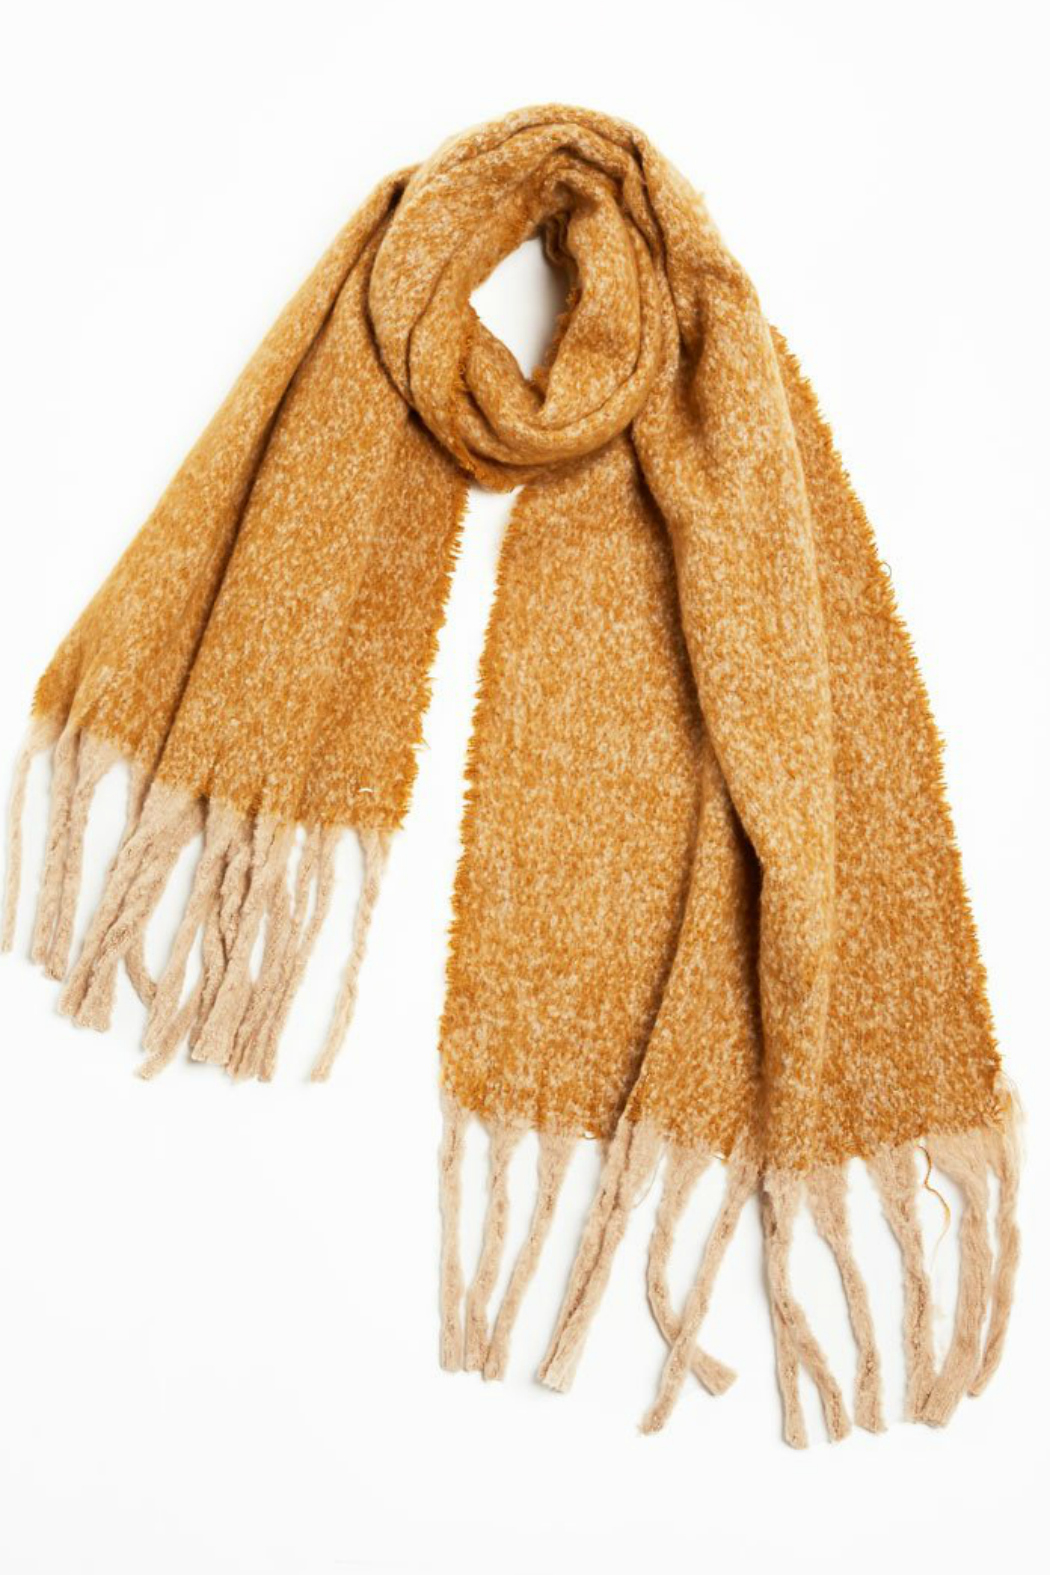 Look by M Nubby contrast fringe scarf - Front Cropped Image